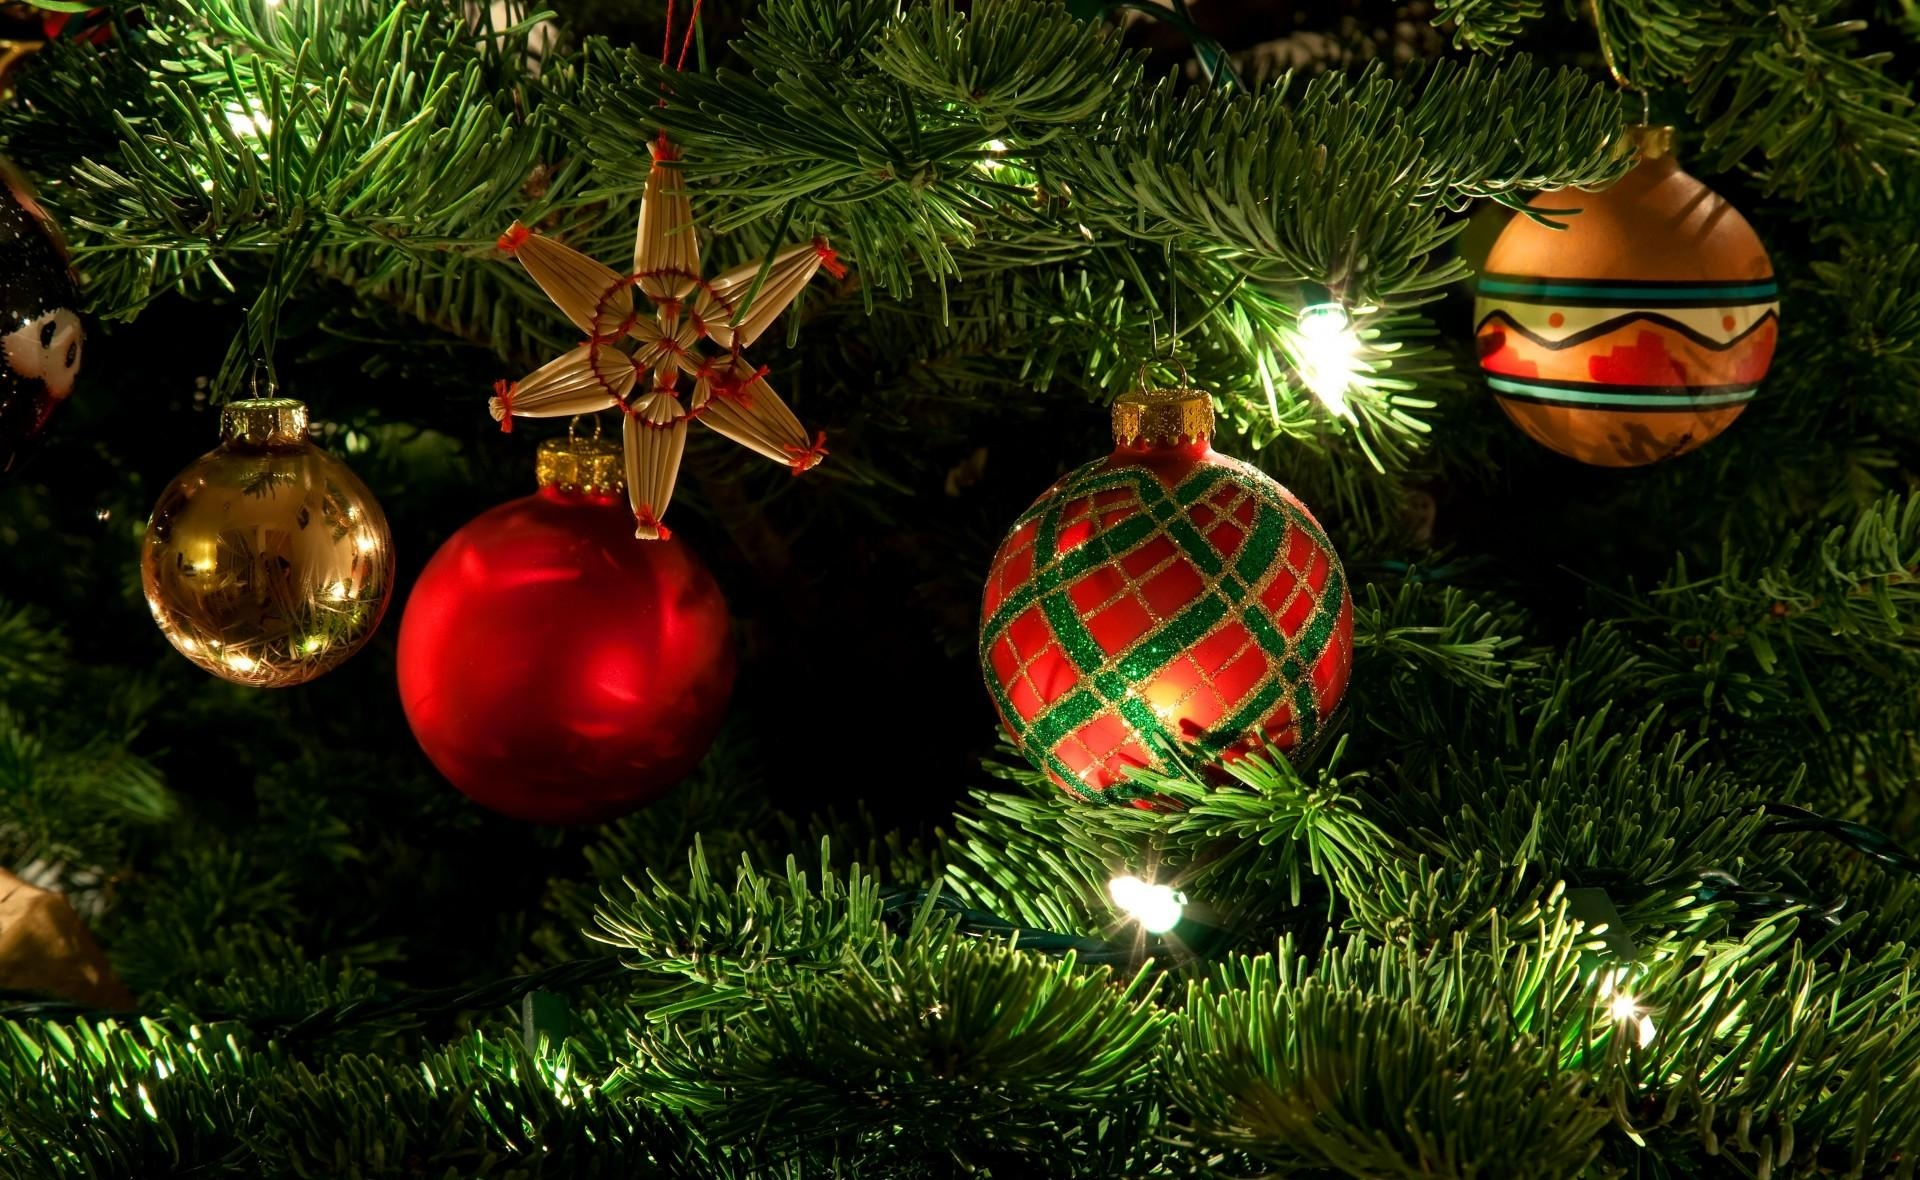 4k christmas decorations wallpapers high quality